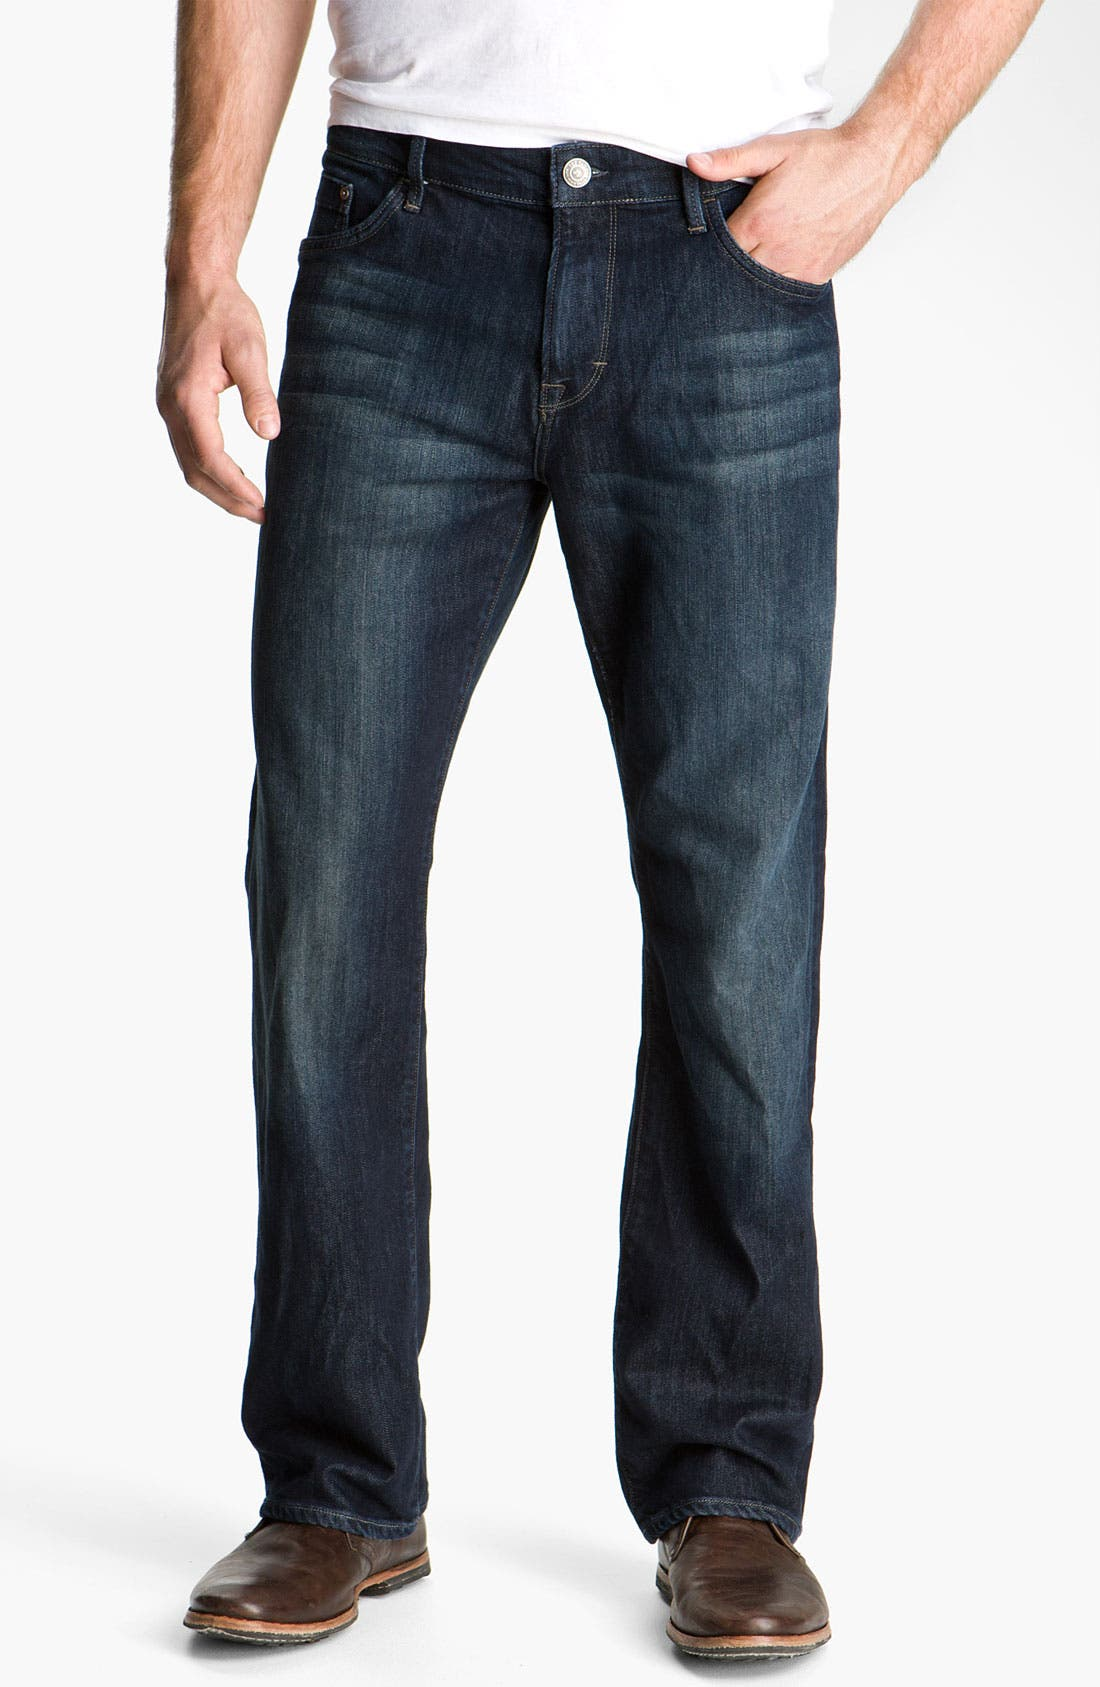 Men's Best-Selling Jeans | Nordstrom